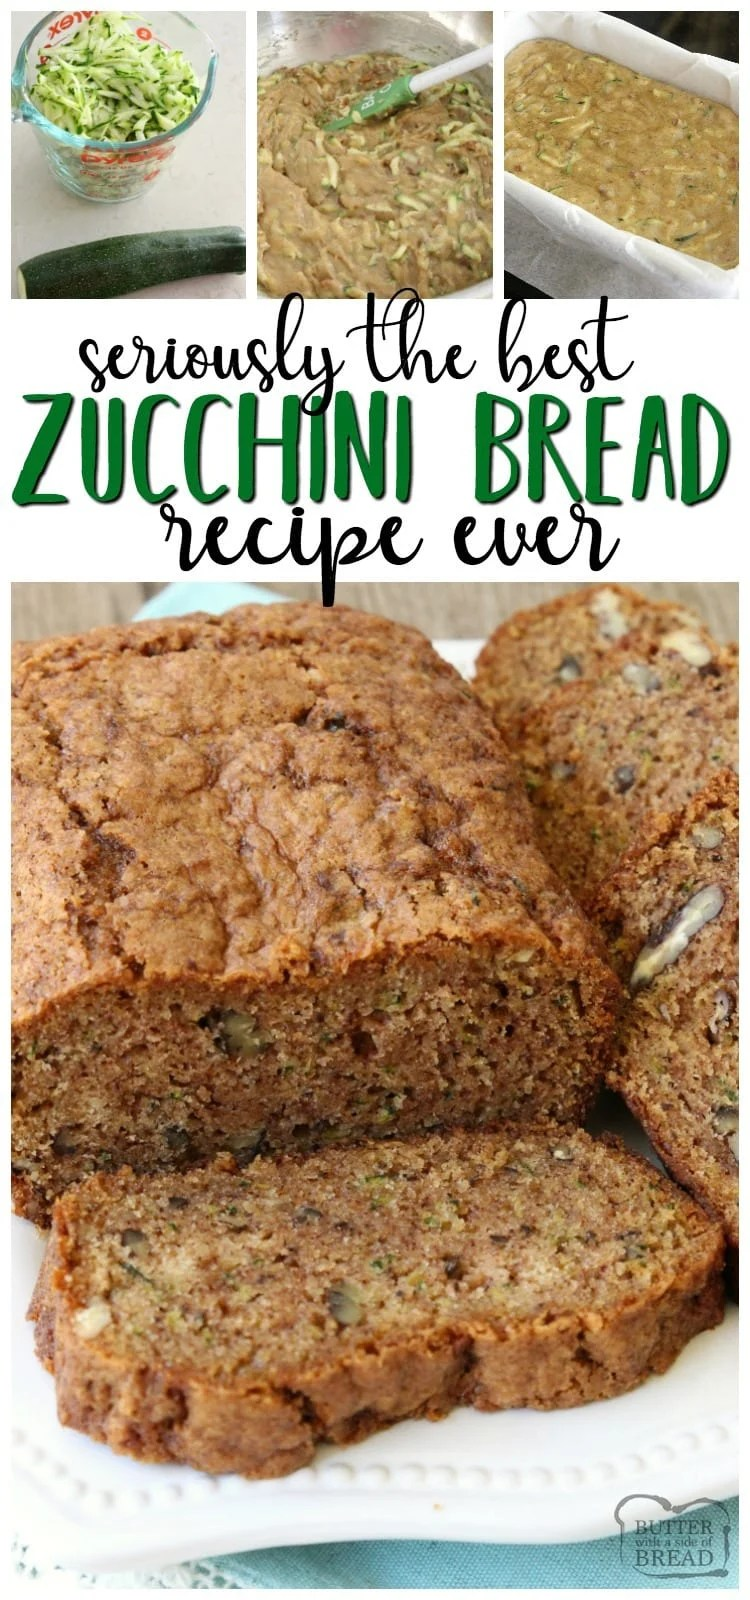 Zucchini Bread recipe that lives up to the name, BEST EVER Zucchini Bread! Easy to make & you'll love the blend of spices used. Read the reviews- it's popular for a reason! It really is the perfect zucchini bread recipe. #zucchini #recipe #food #zucchinibread #zucchinirecipe #bread #baking